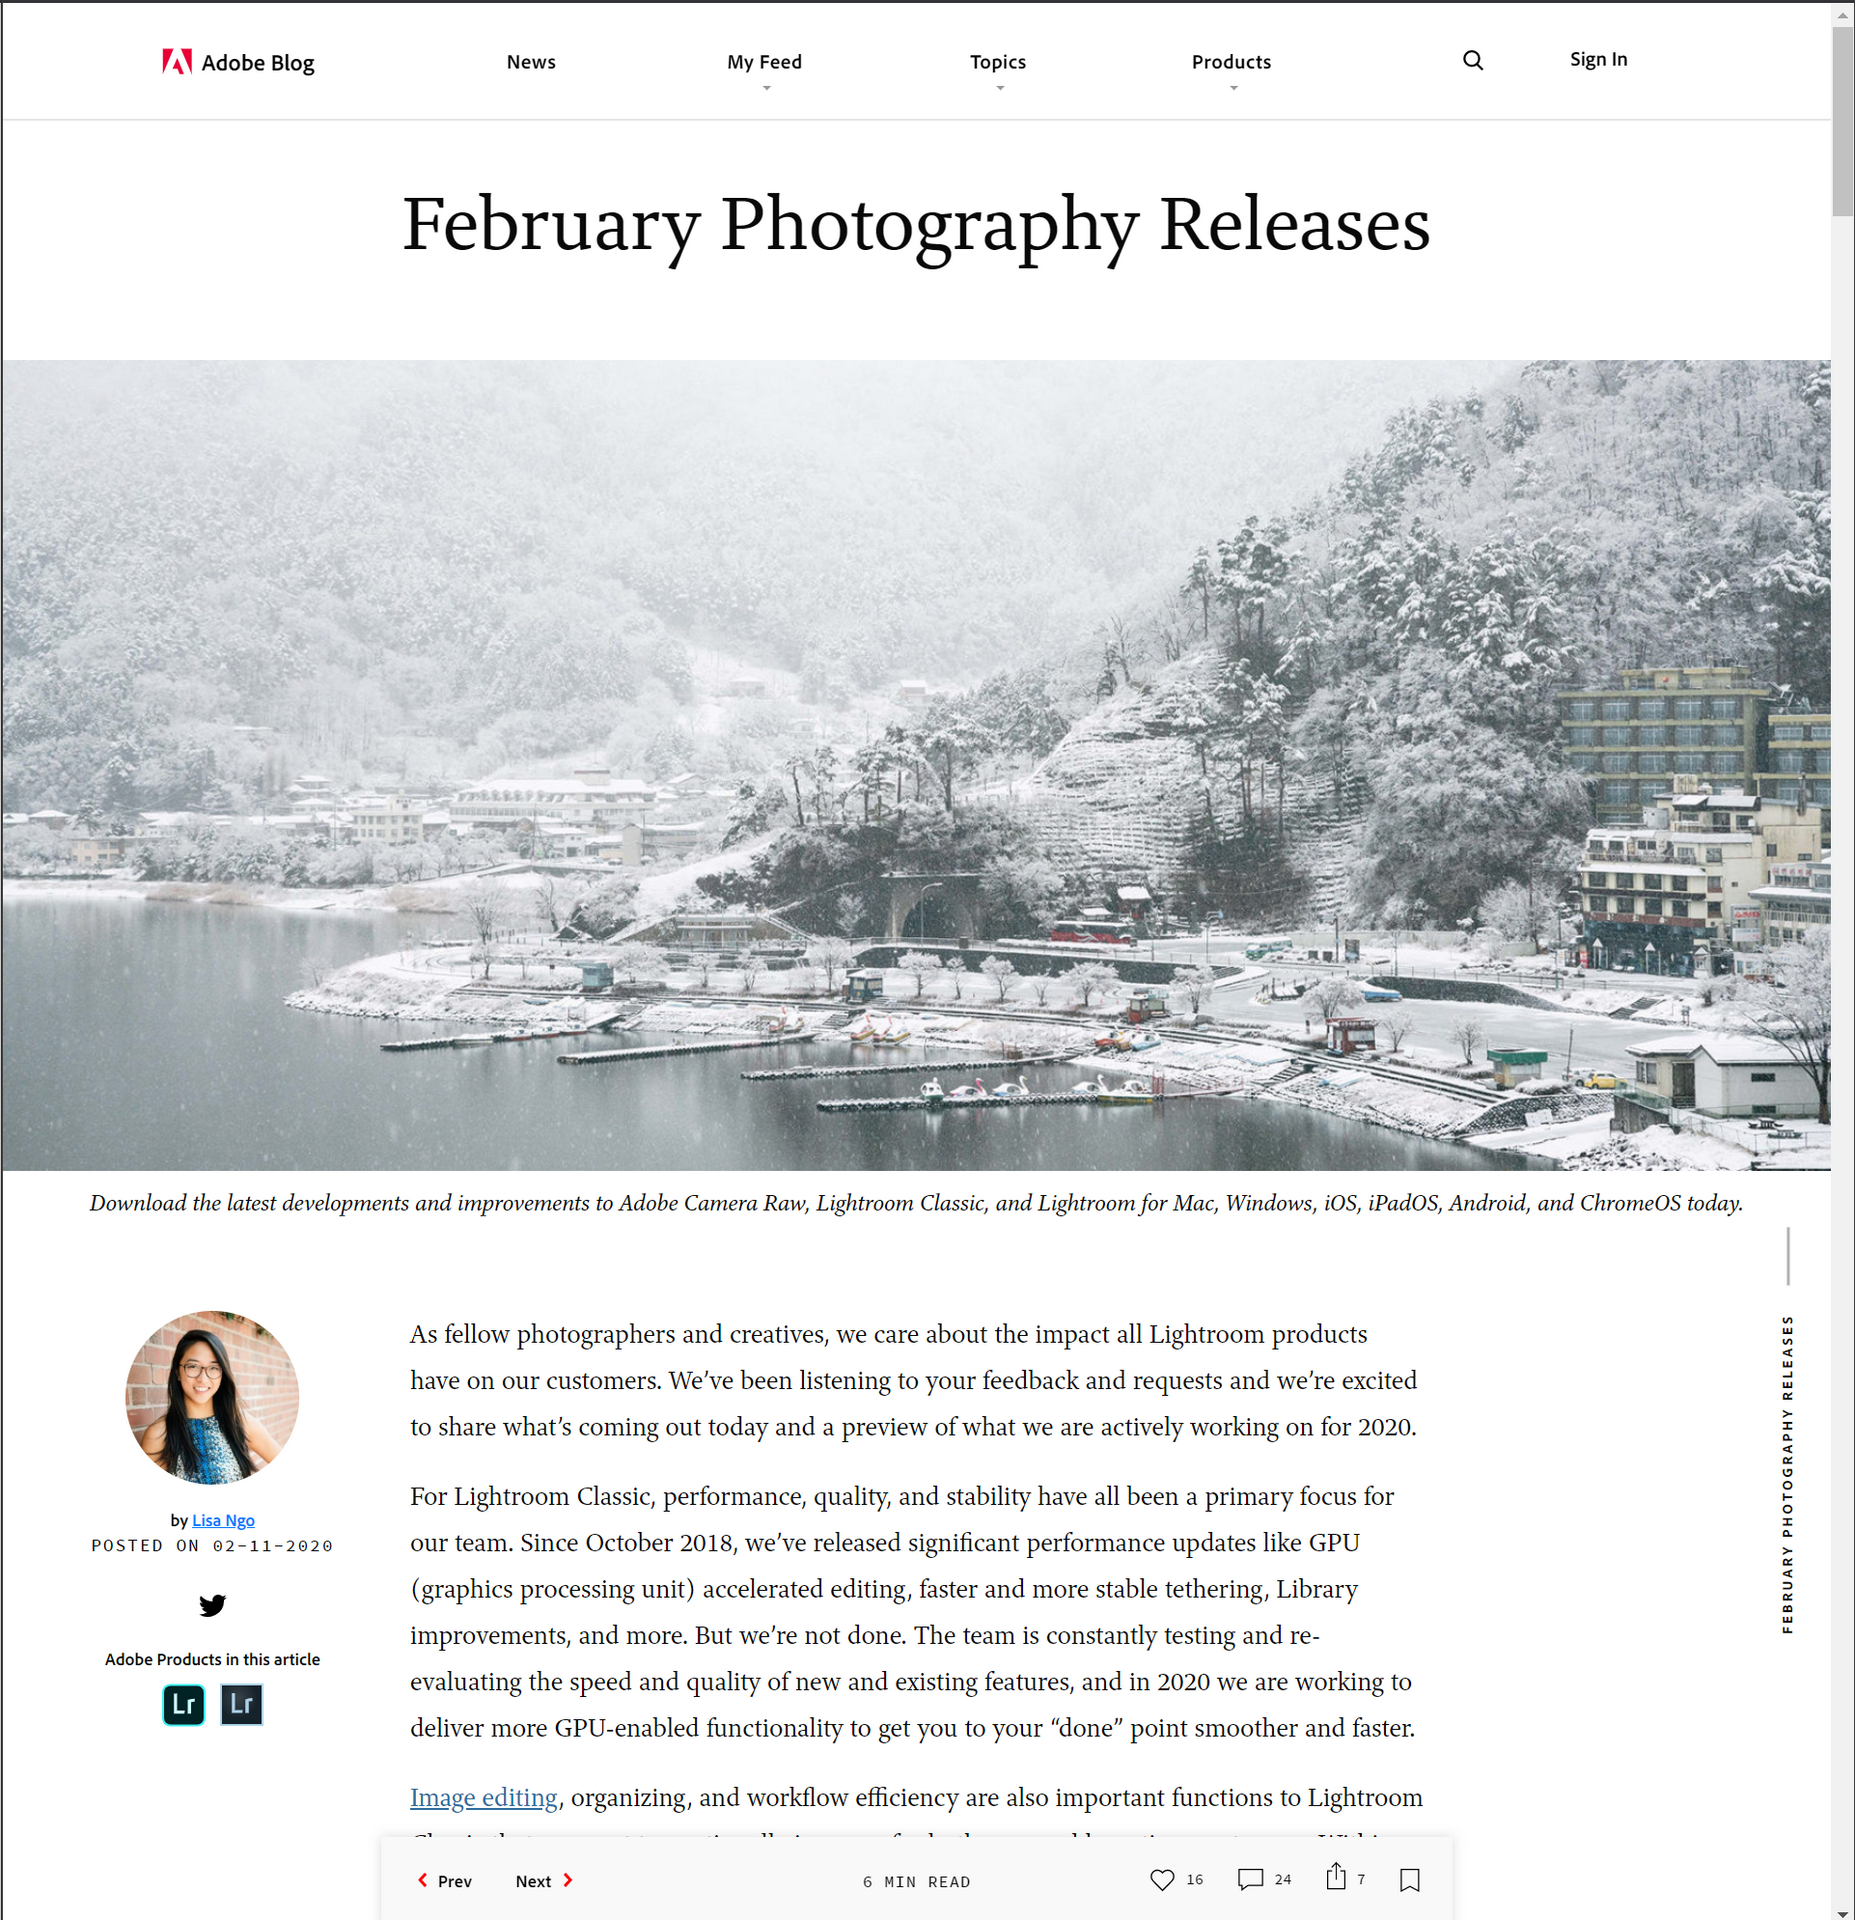 Adobe Blog - February Photography Releases